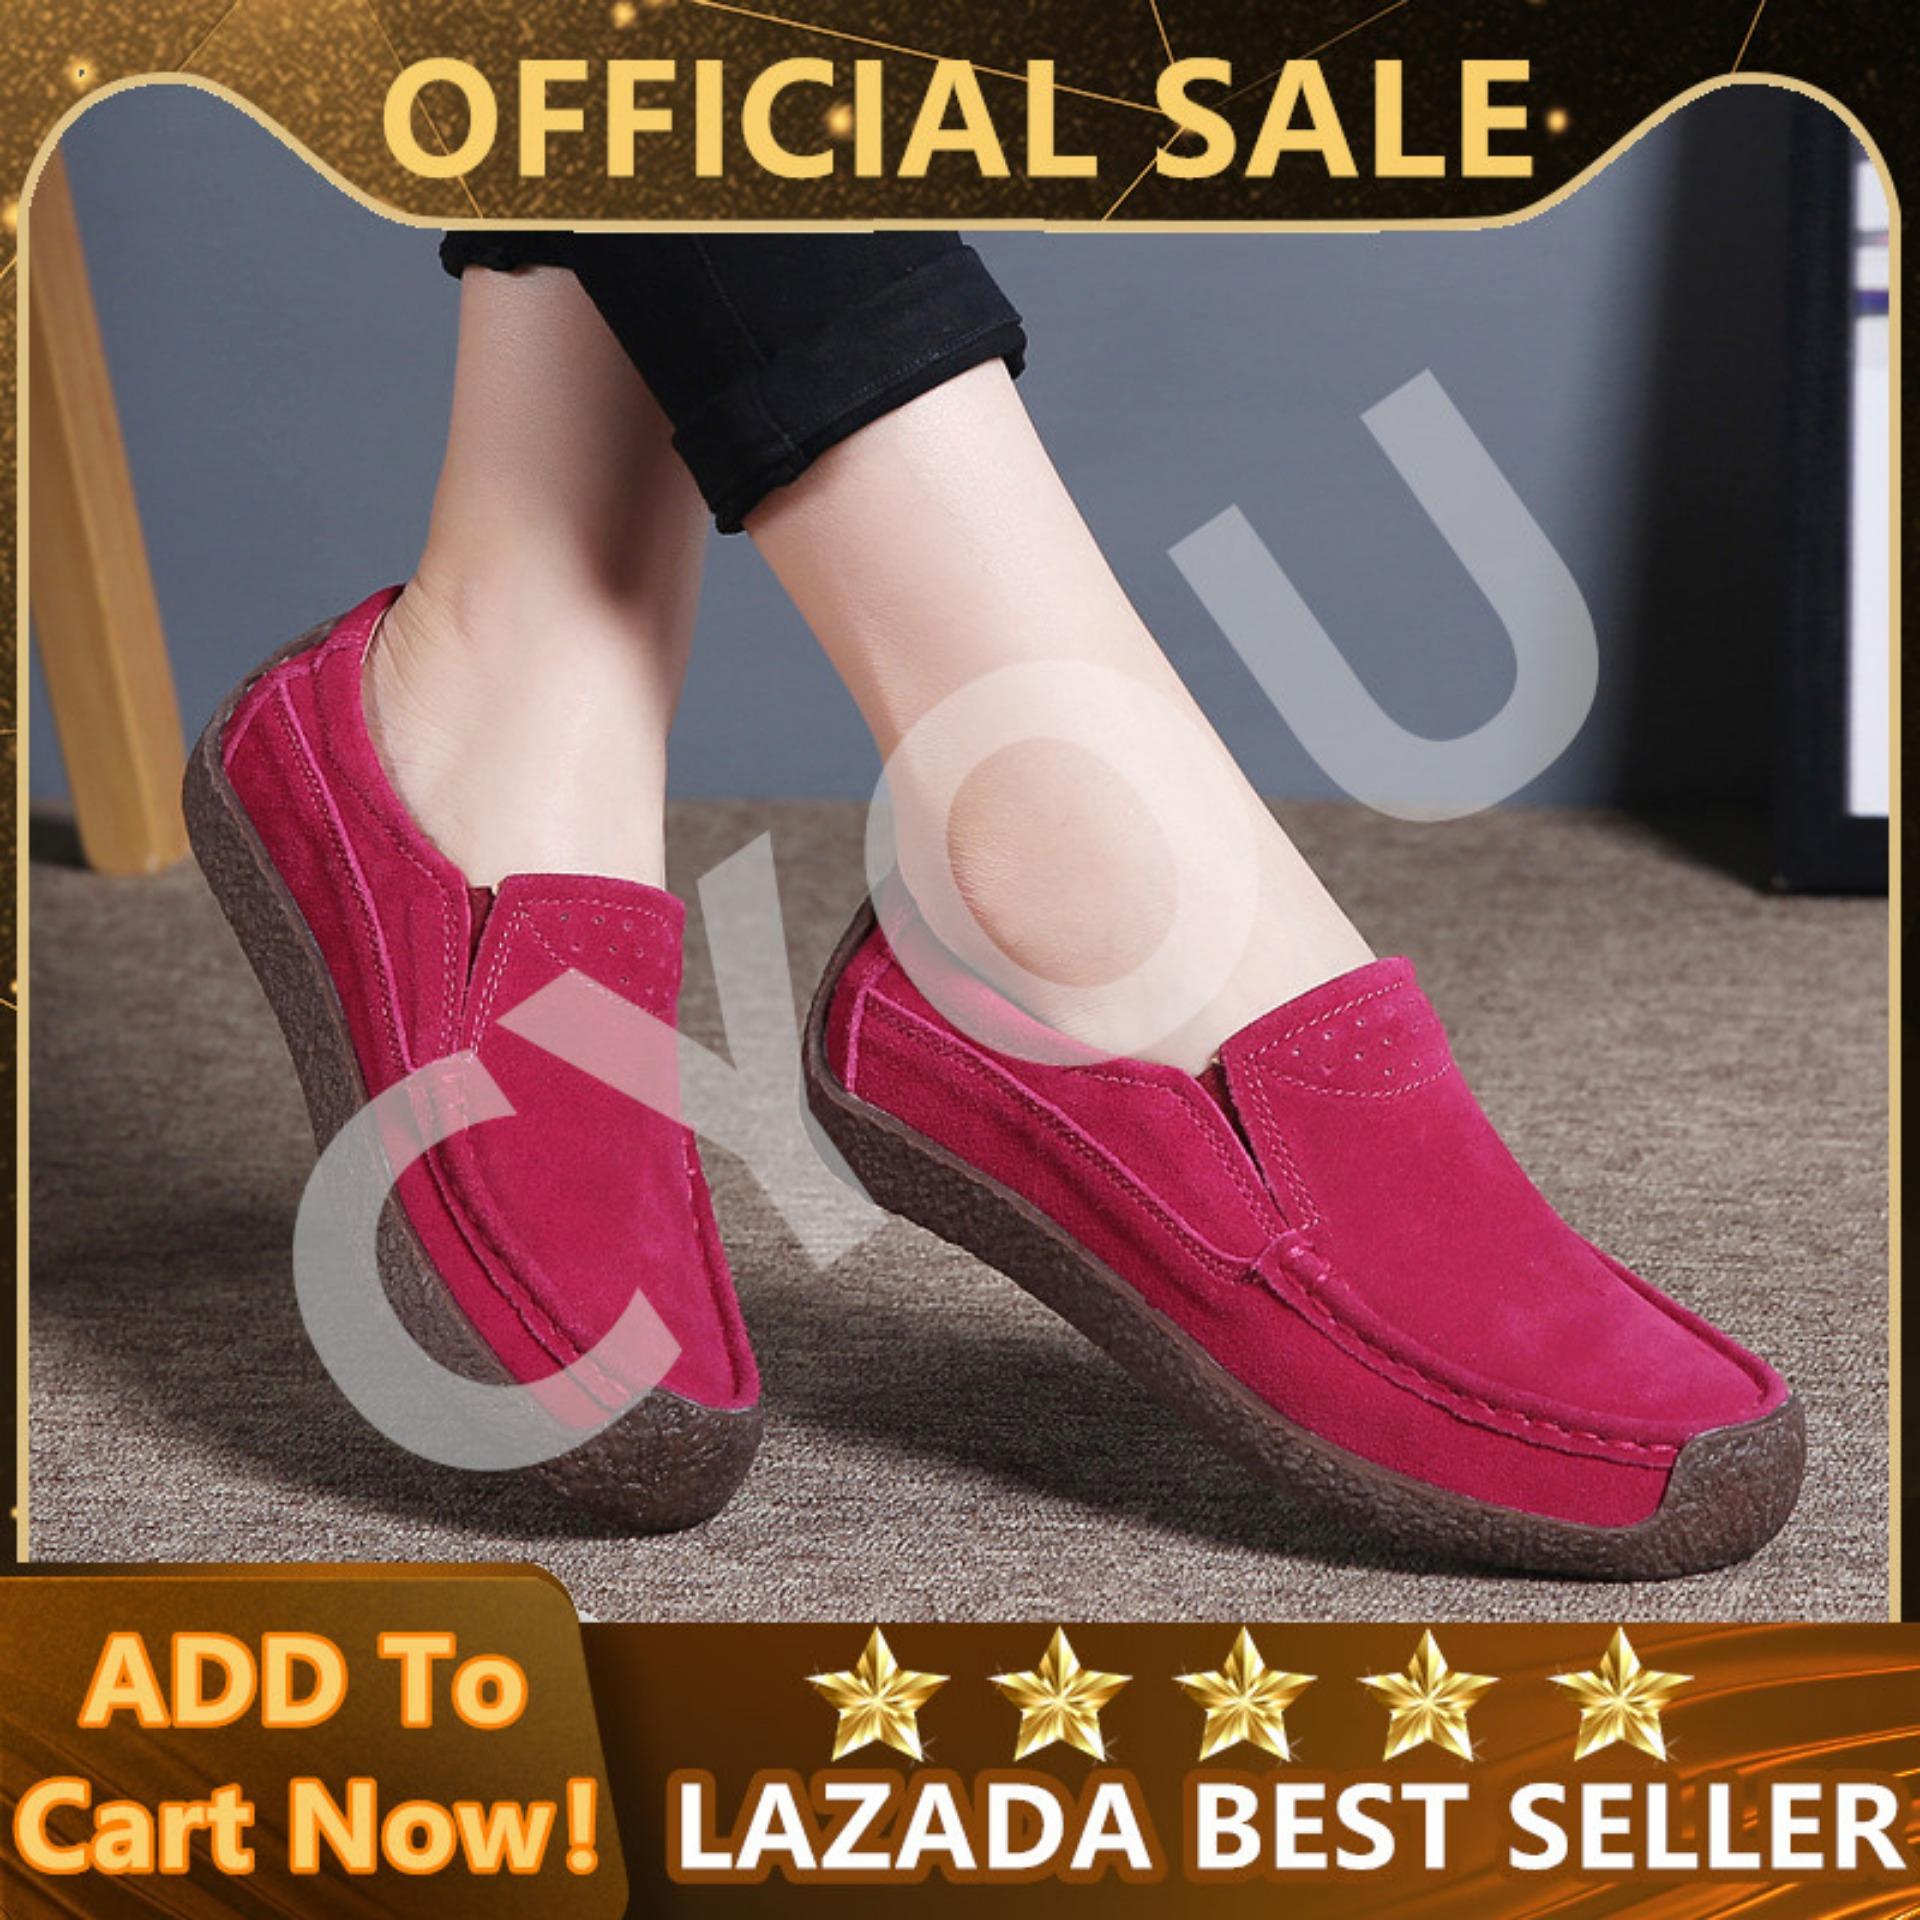 249c476963d CYOU Women Oxfords Shoes Ballerina Flats Shoes Women Genuine Leather Lace  Up boat Shoes Moccasins Loafers【FREE SHIPPING】